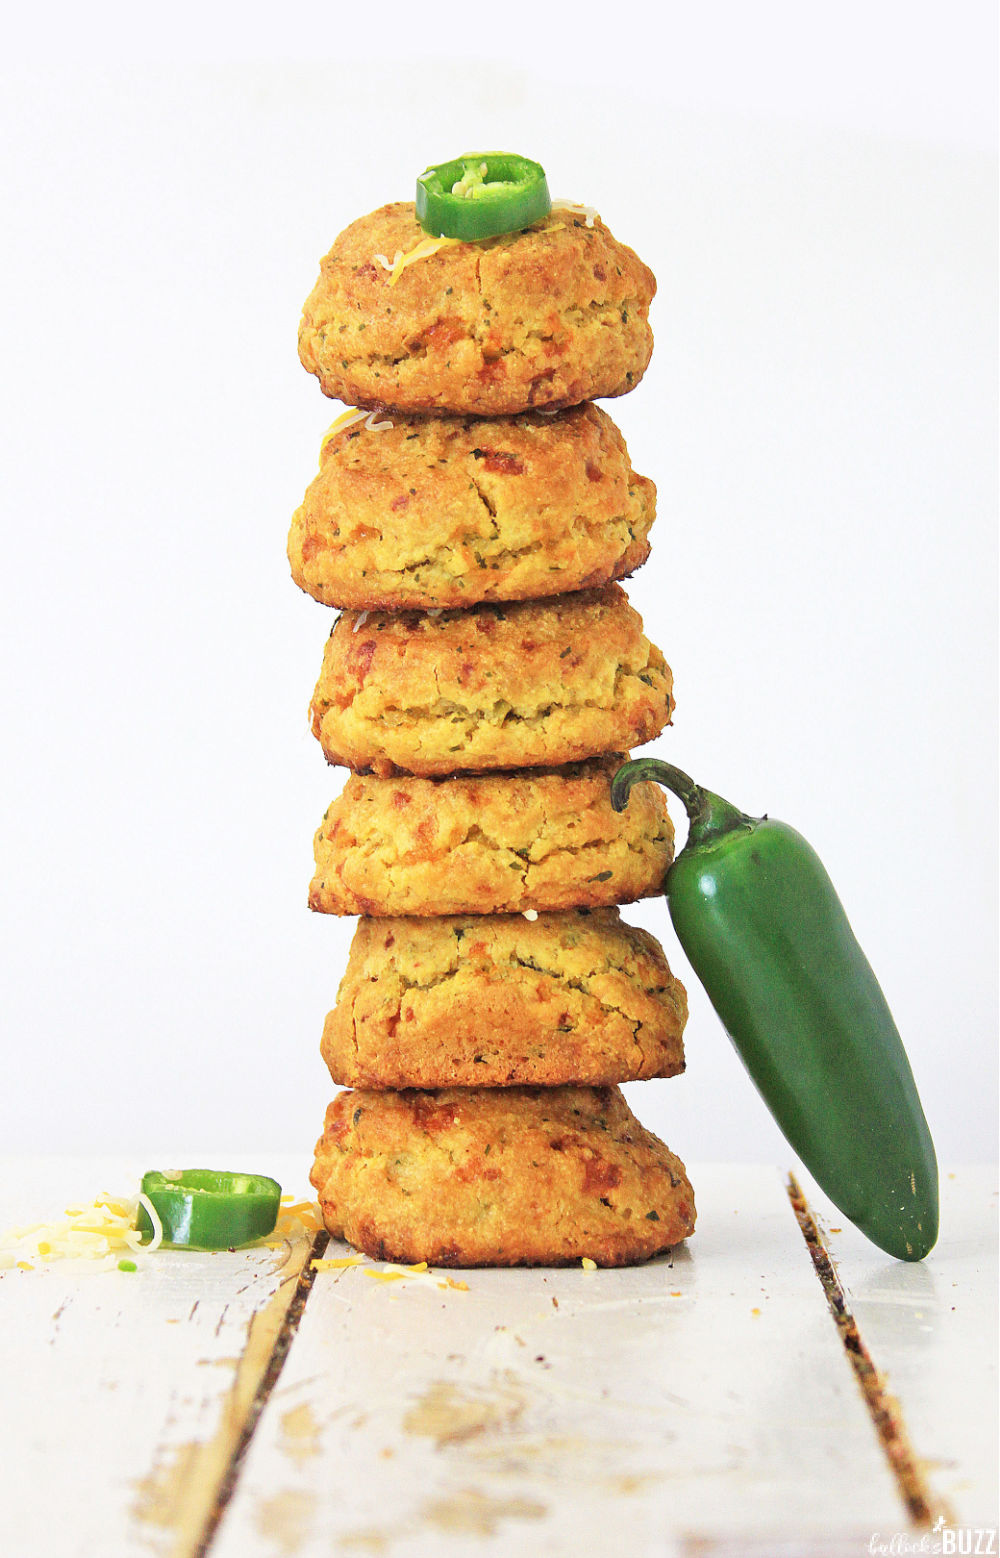 These savory Jalapeño Cheddar Cornbread Muffins are delicious as an appetizer, a snack, or as a side.